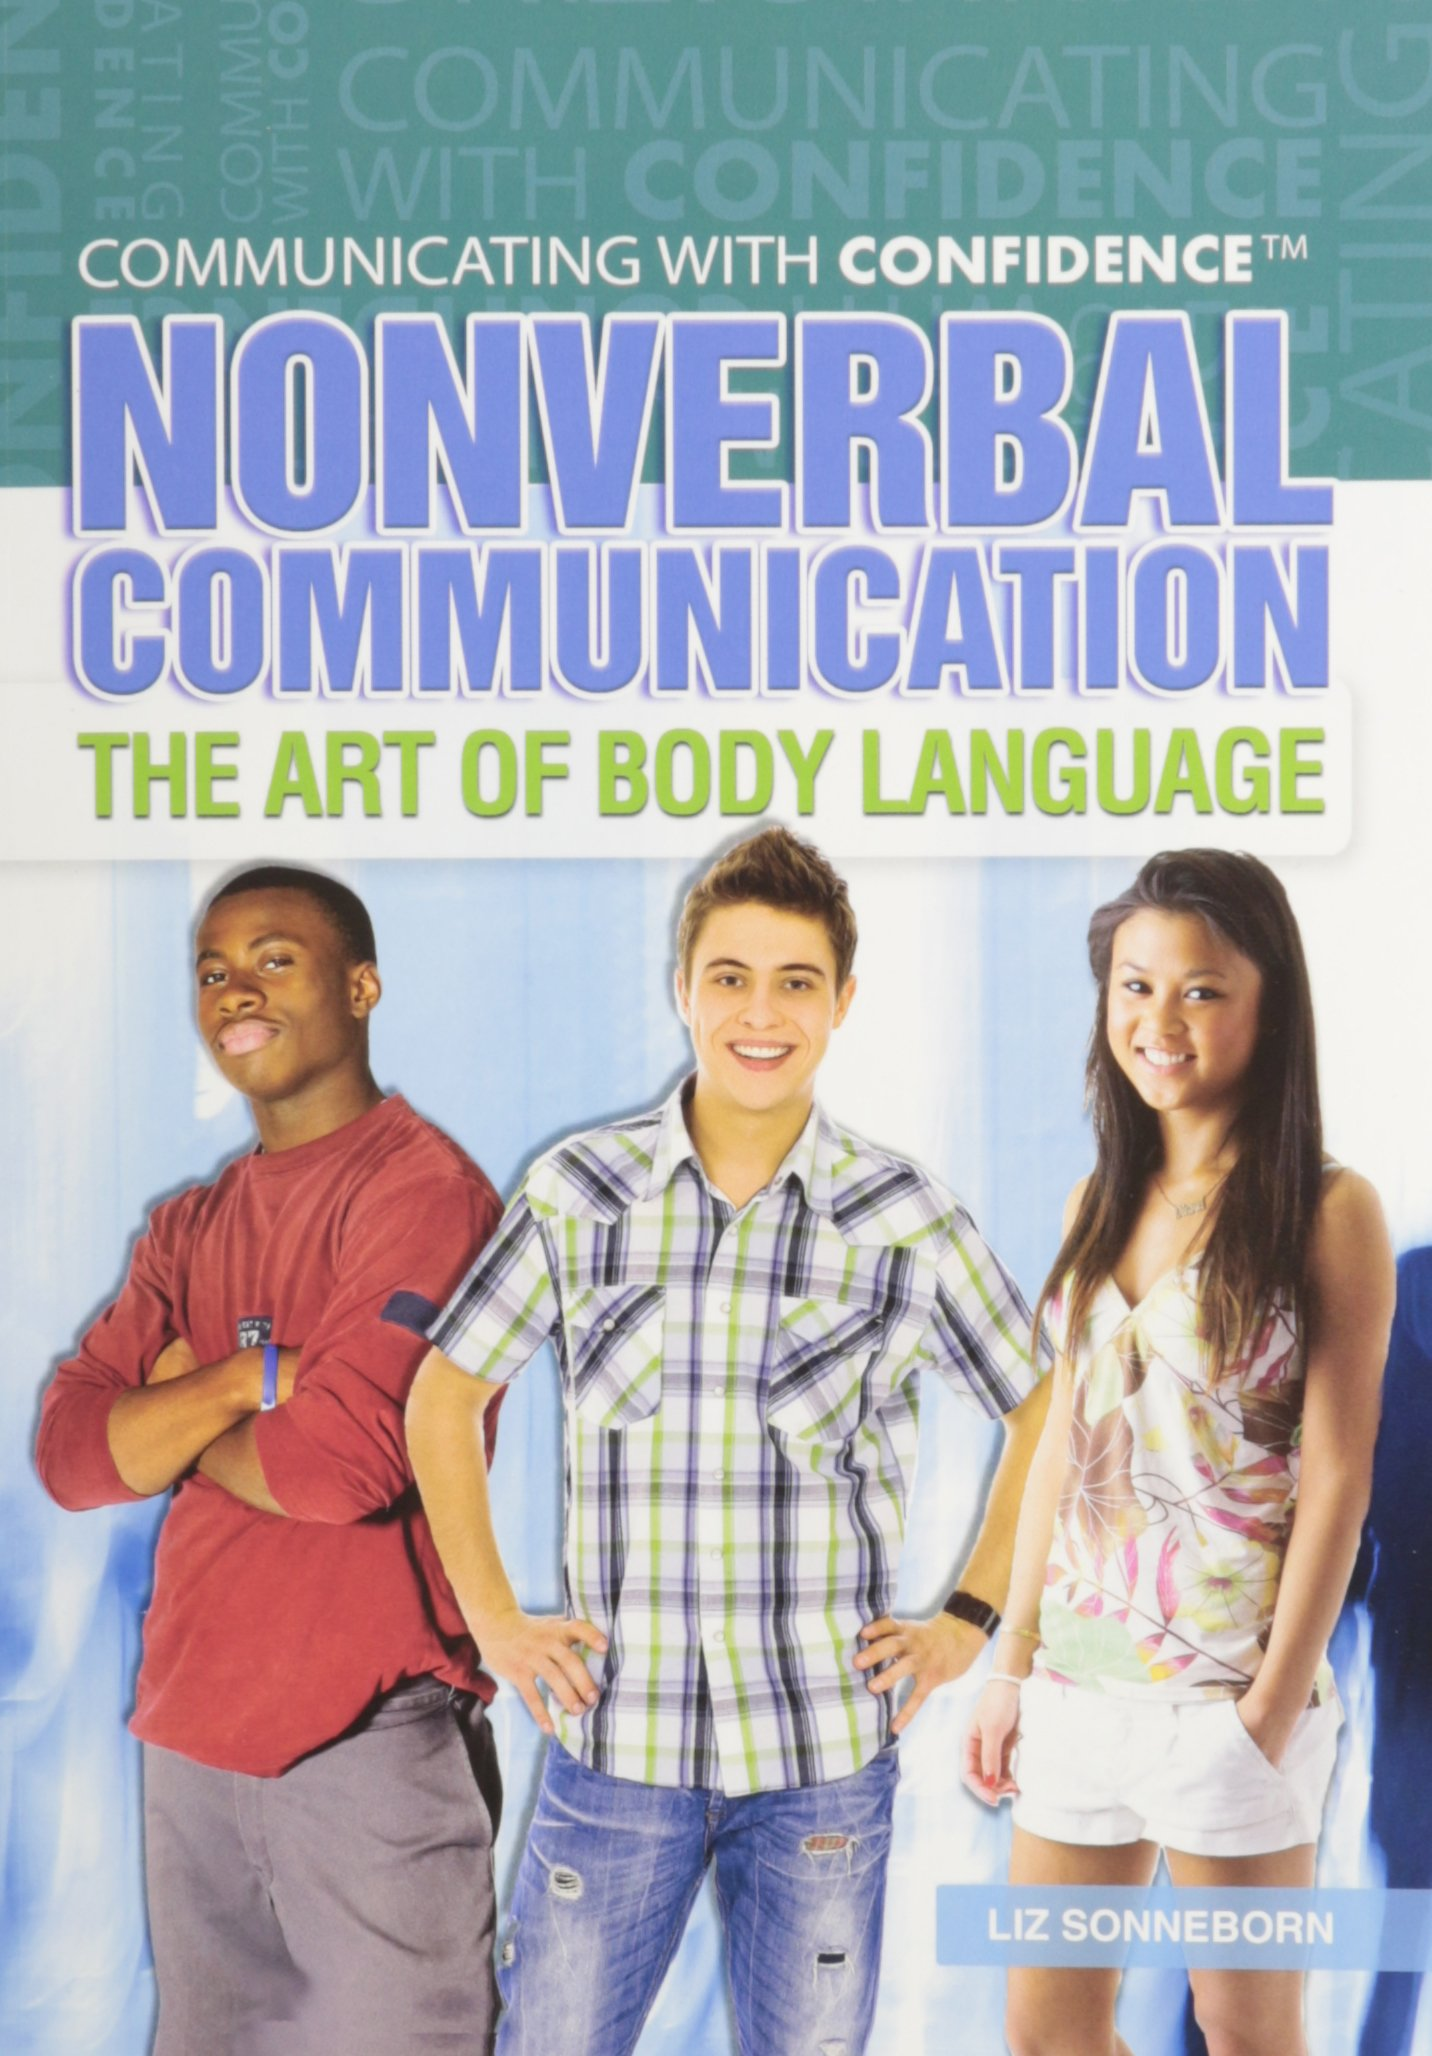 Nonverbal Communication (Communicating with Confidence) PDF